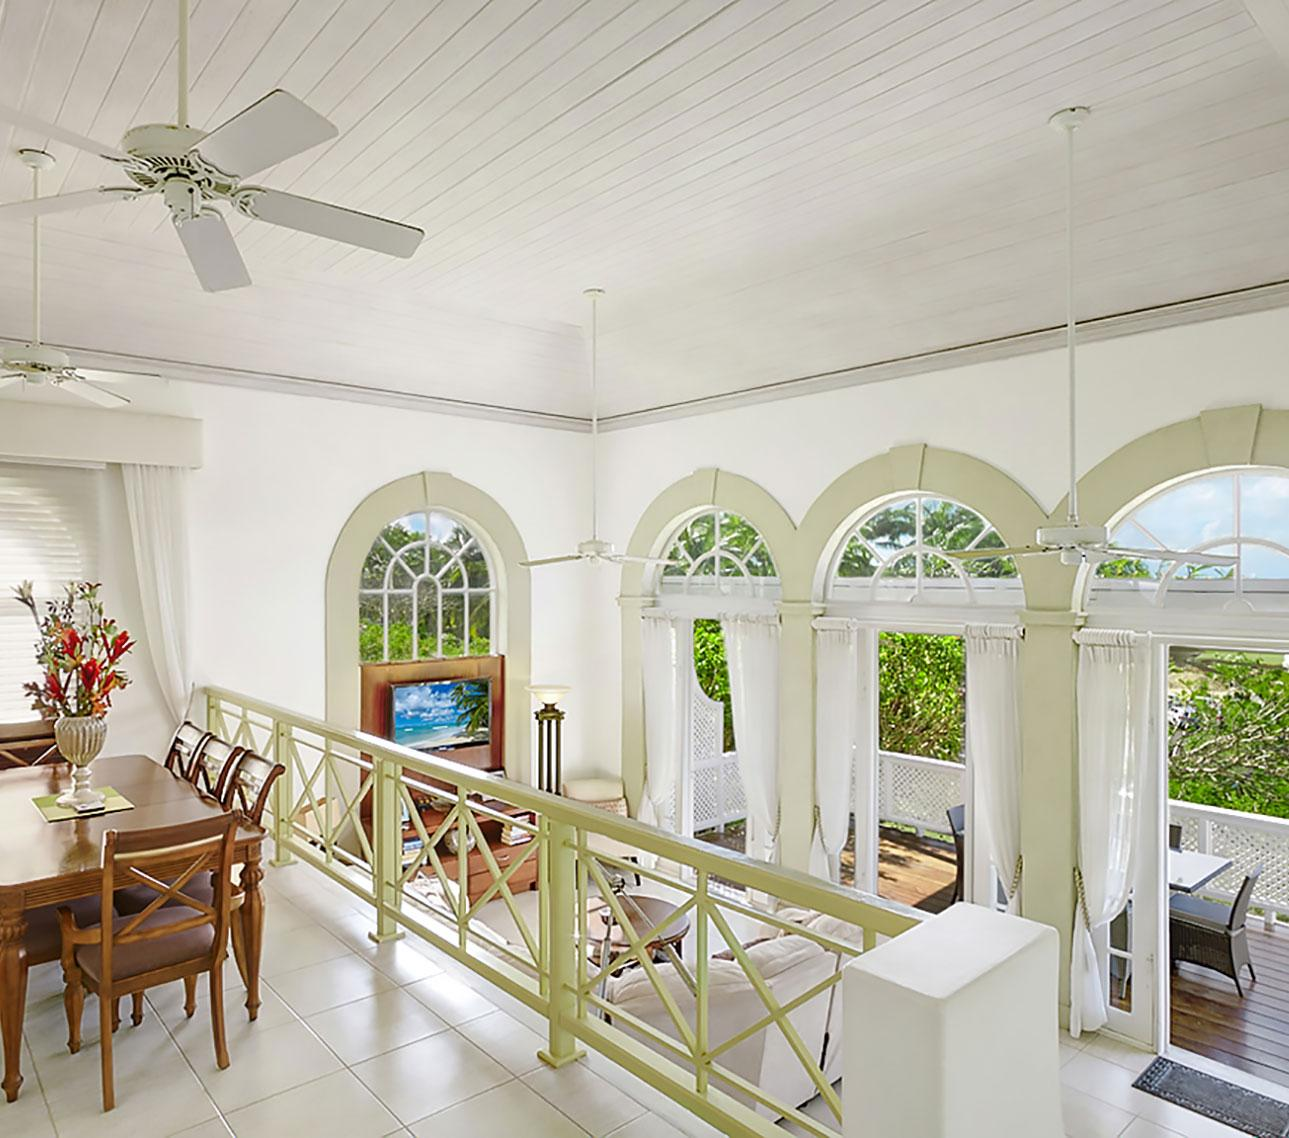 Cassia Heights NO.1, Royal Westmoreland, St. James